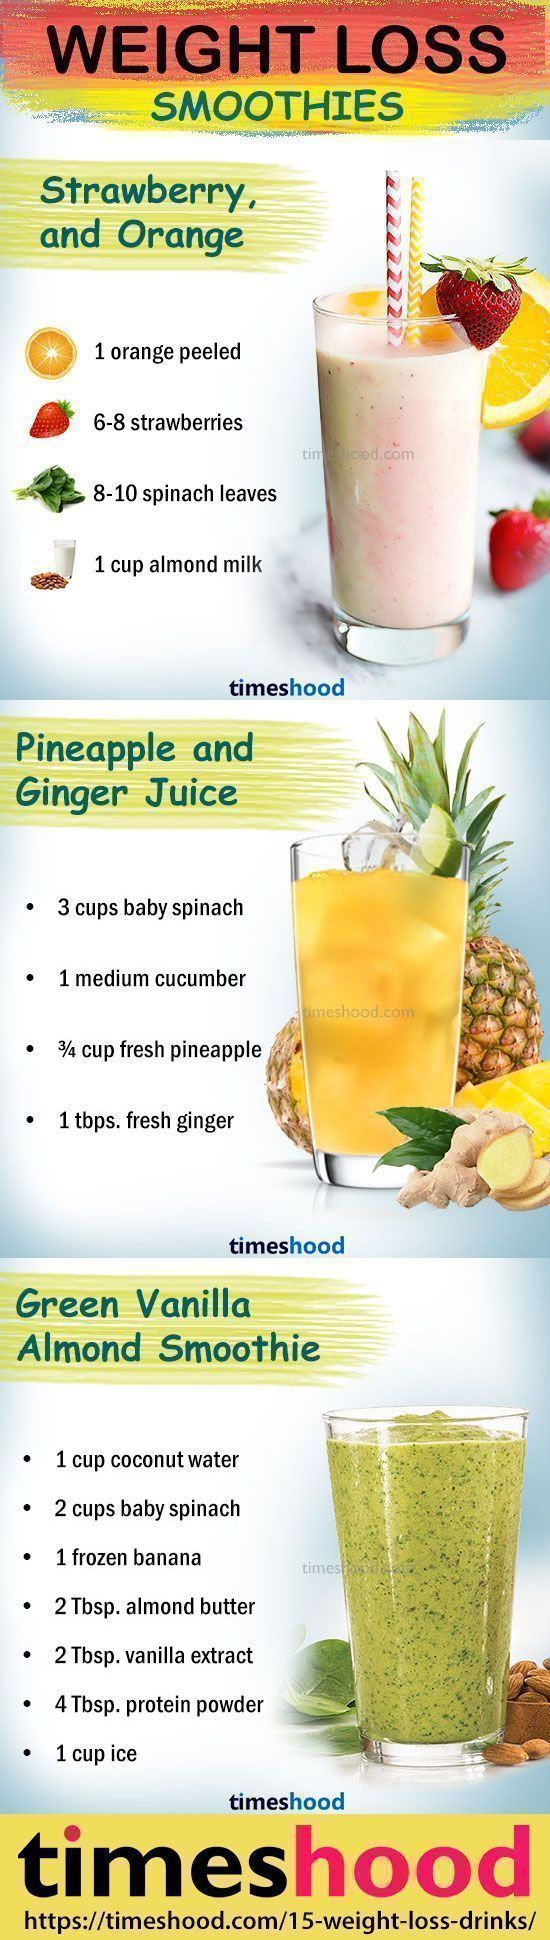 Healthy smoothie recipes for weight loss. Drink to lose weight. Weight loss smoothie recipes. Fat burning smoothies for fast weight loss. Check out 15 effective weight loss Drinks/Detox/Juice/Smoothies that works fast. https://timeshood.com/15-weight-loss-drinks/ #weightlossjuicing #loseweightjuicing #weightlossworkout